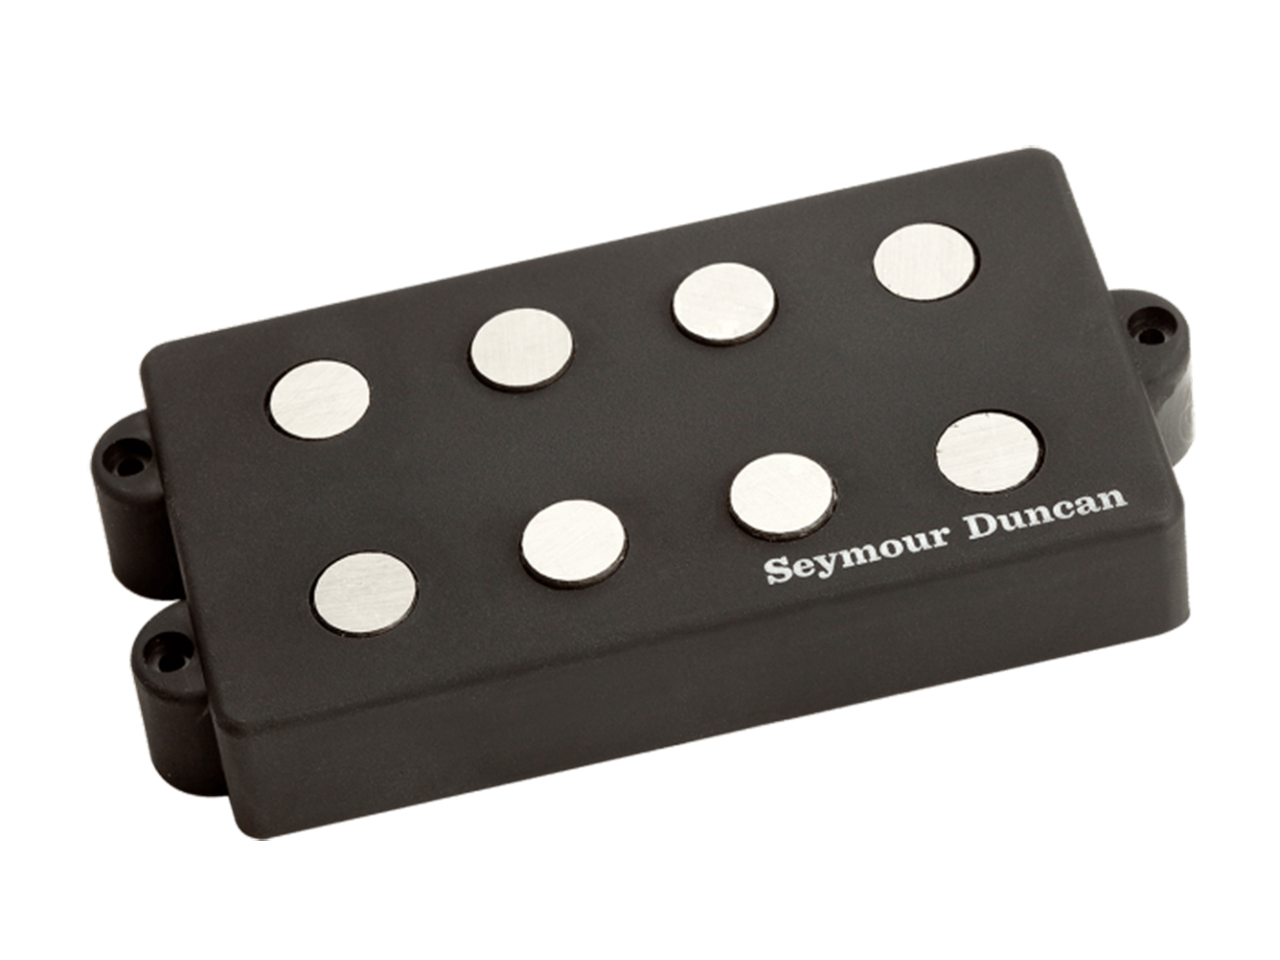 Seymour Duncan(セイモアダンカン) for Musicman® Alnico [SMB-4A/4strings] (ミュージックマンベース用ピックアップ)